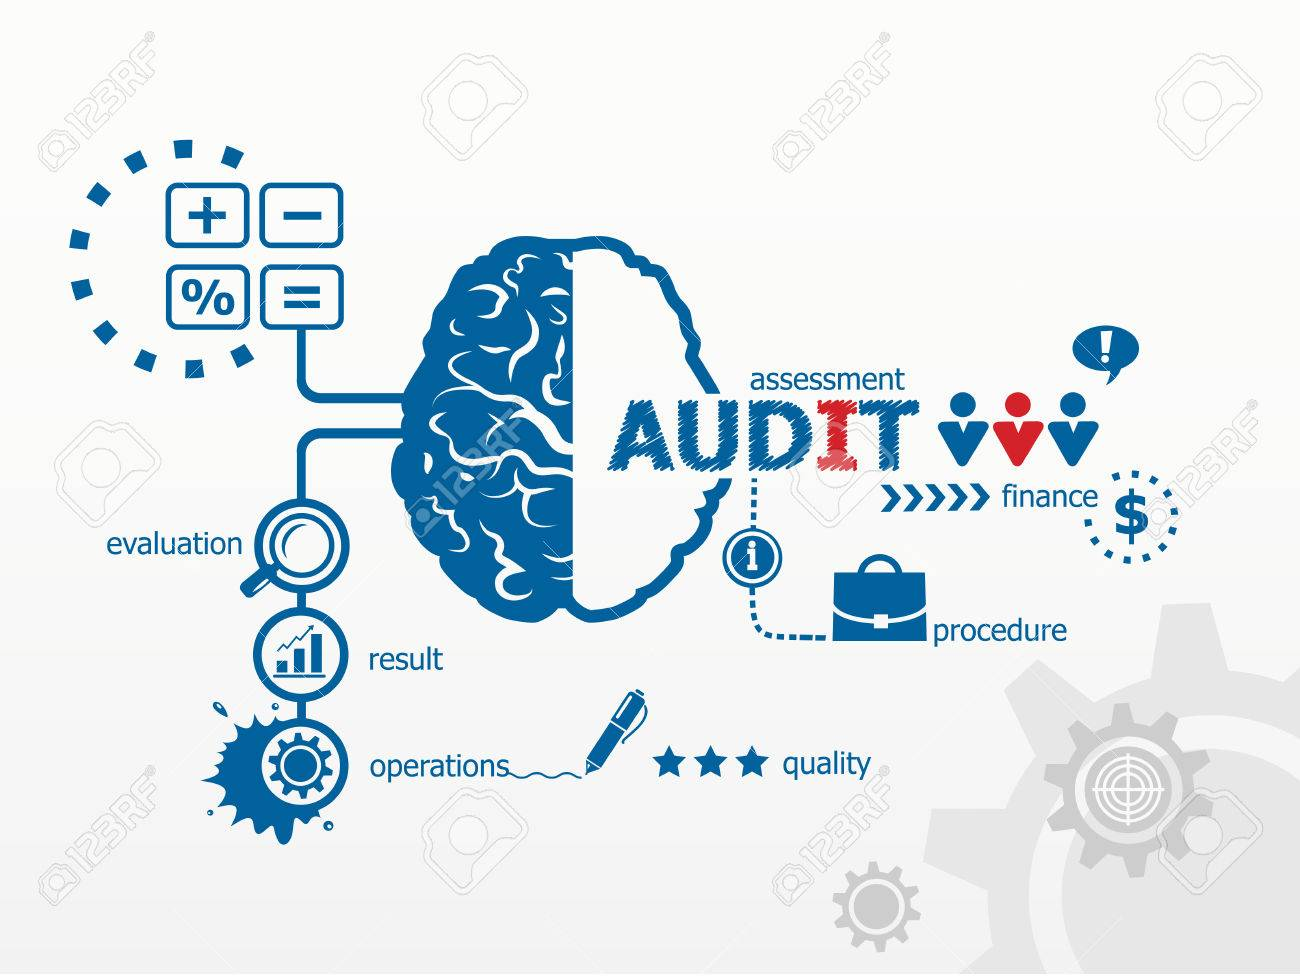 Audit - analyze the financial statement of a company  Several